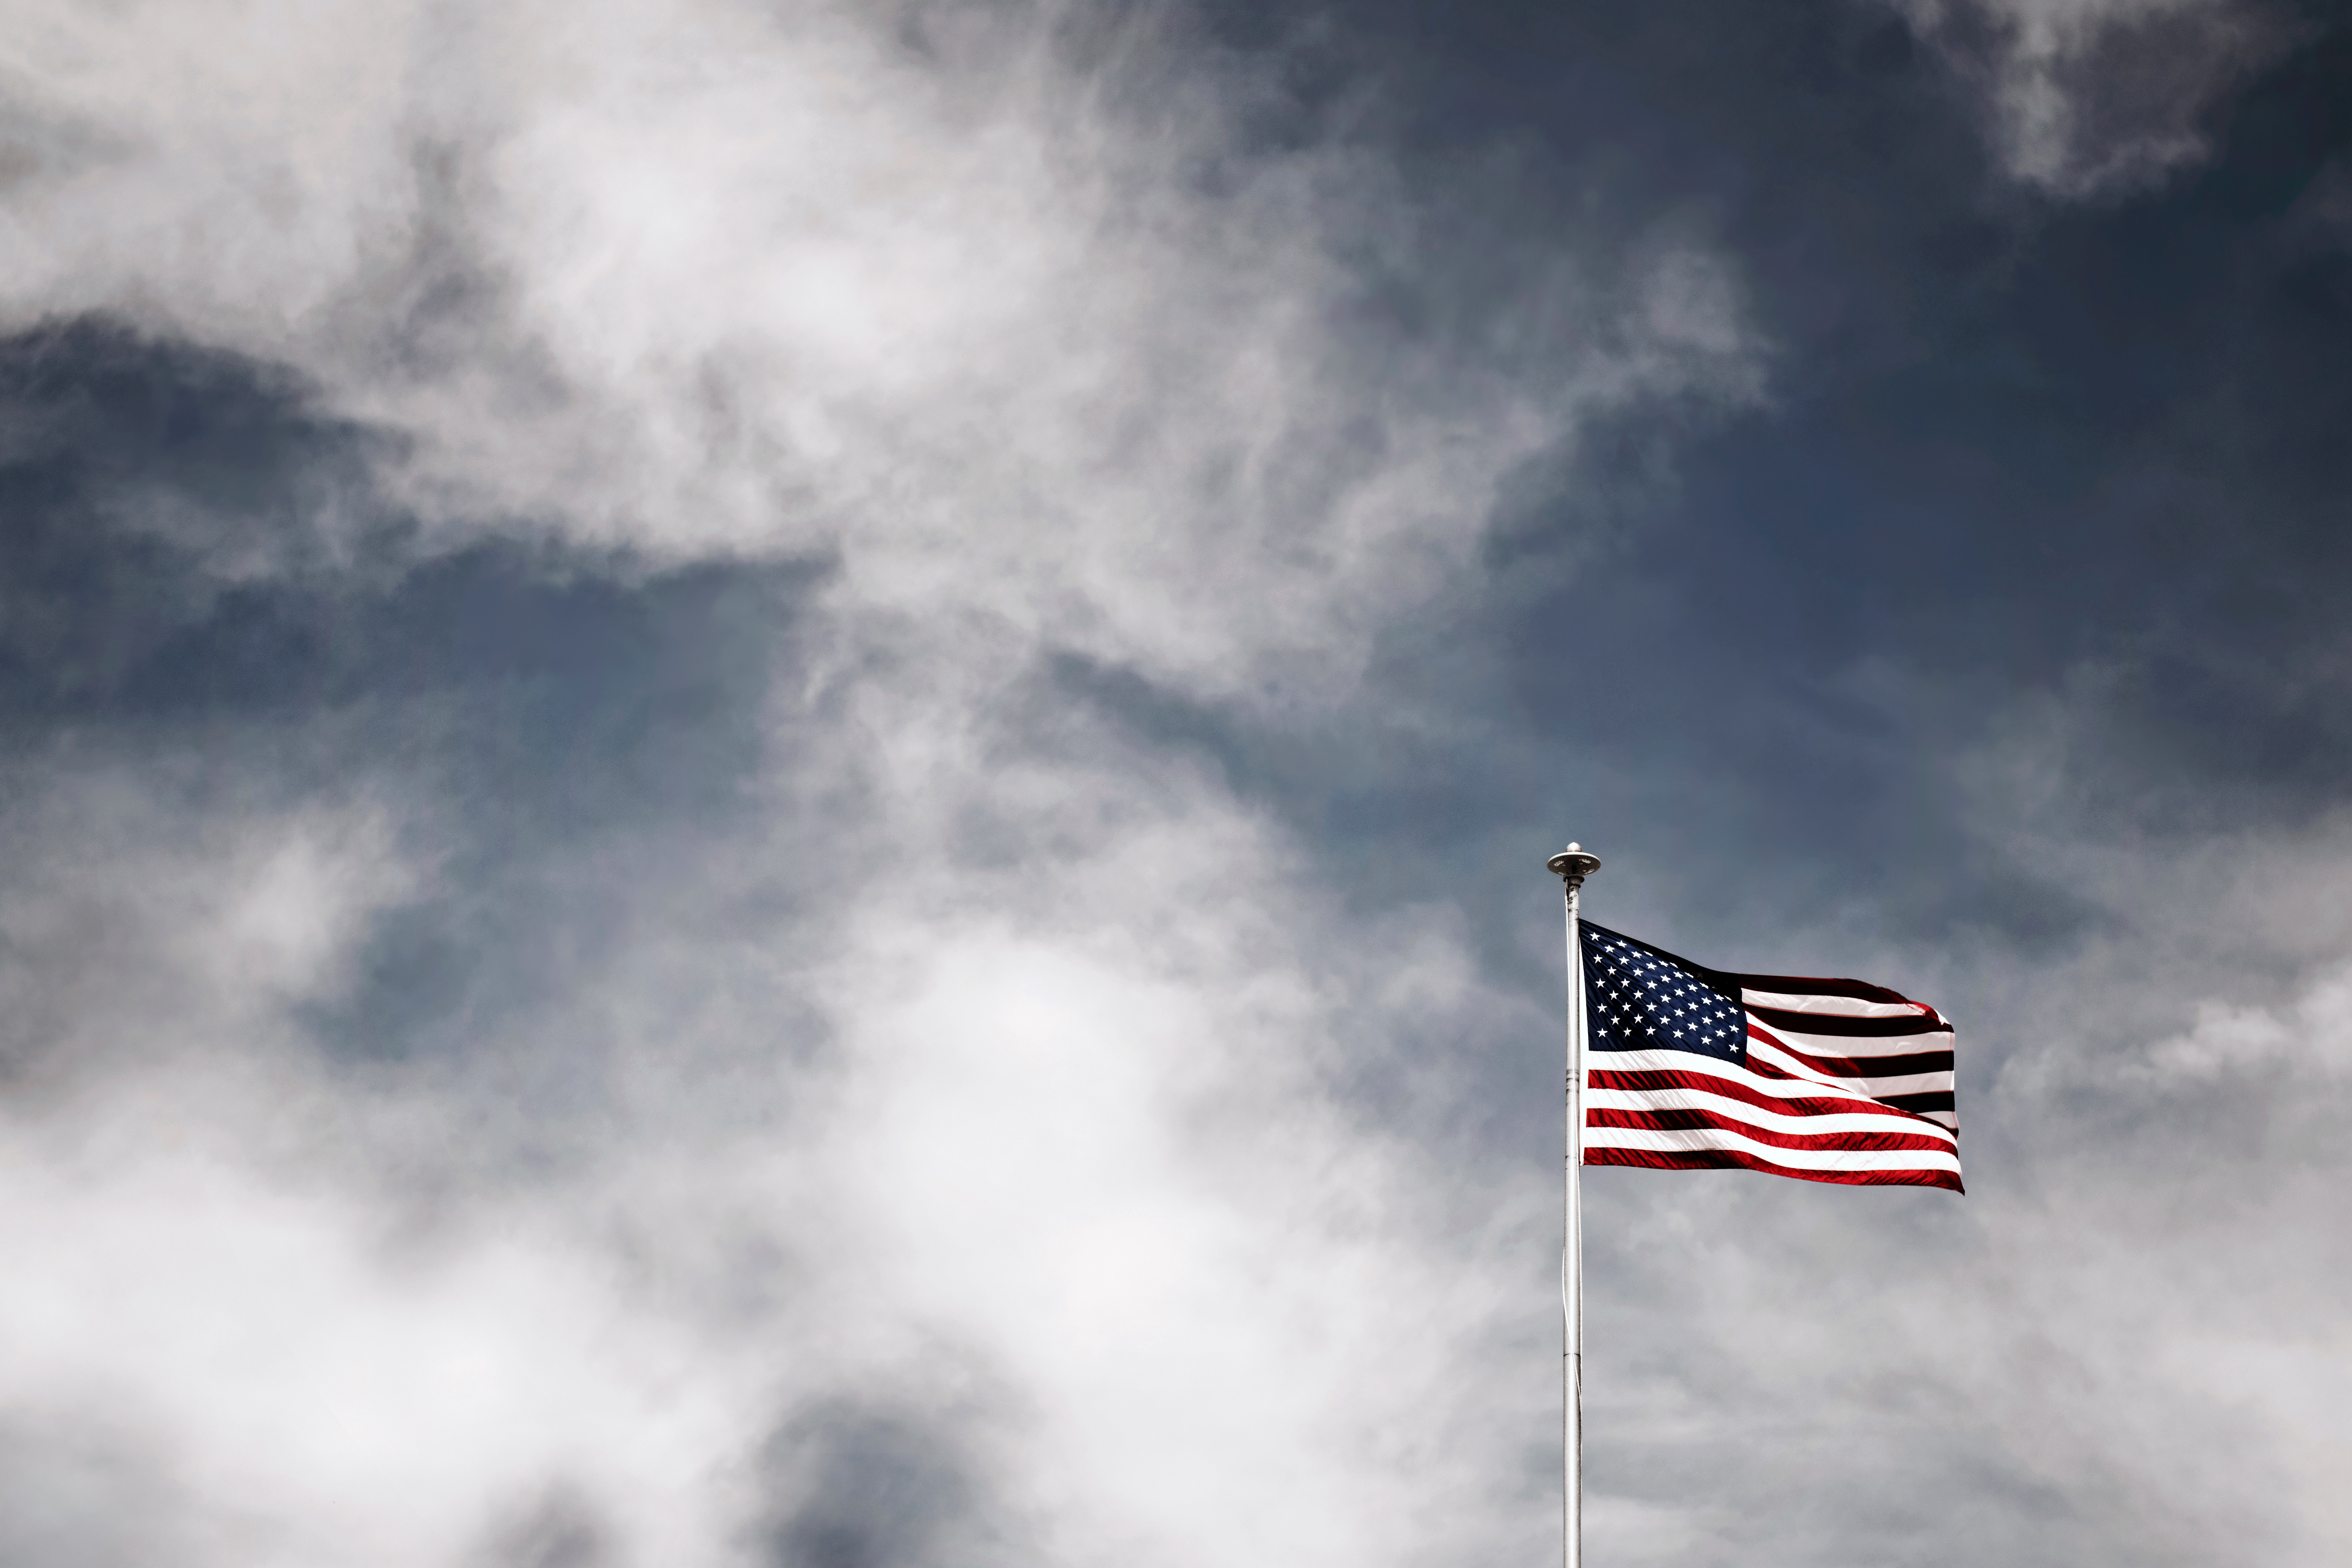 The American Flag blowing in the wind with a background of clouds.